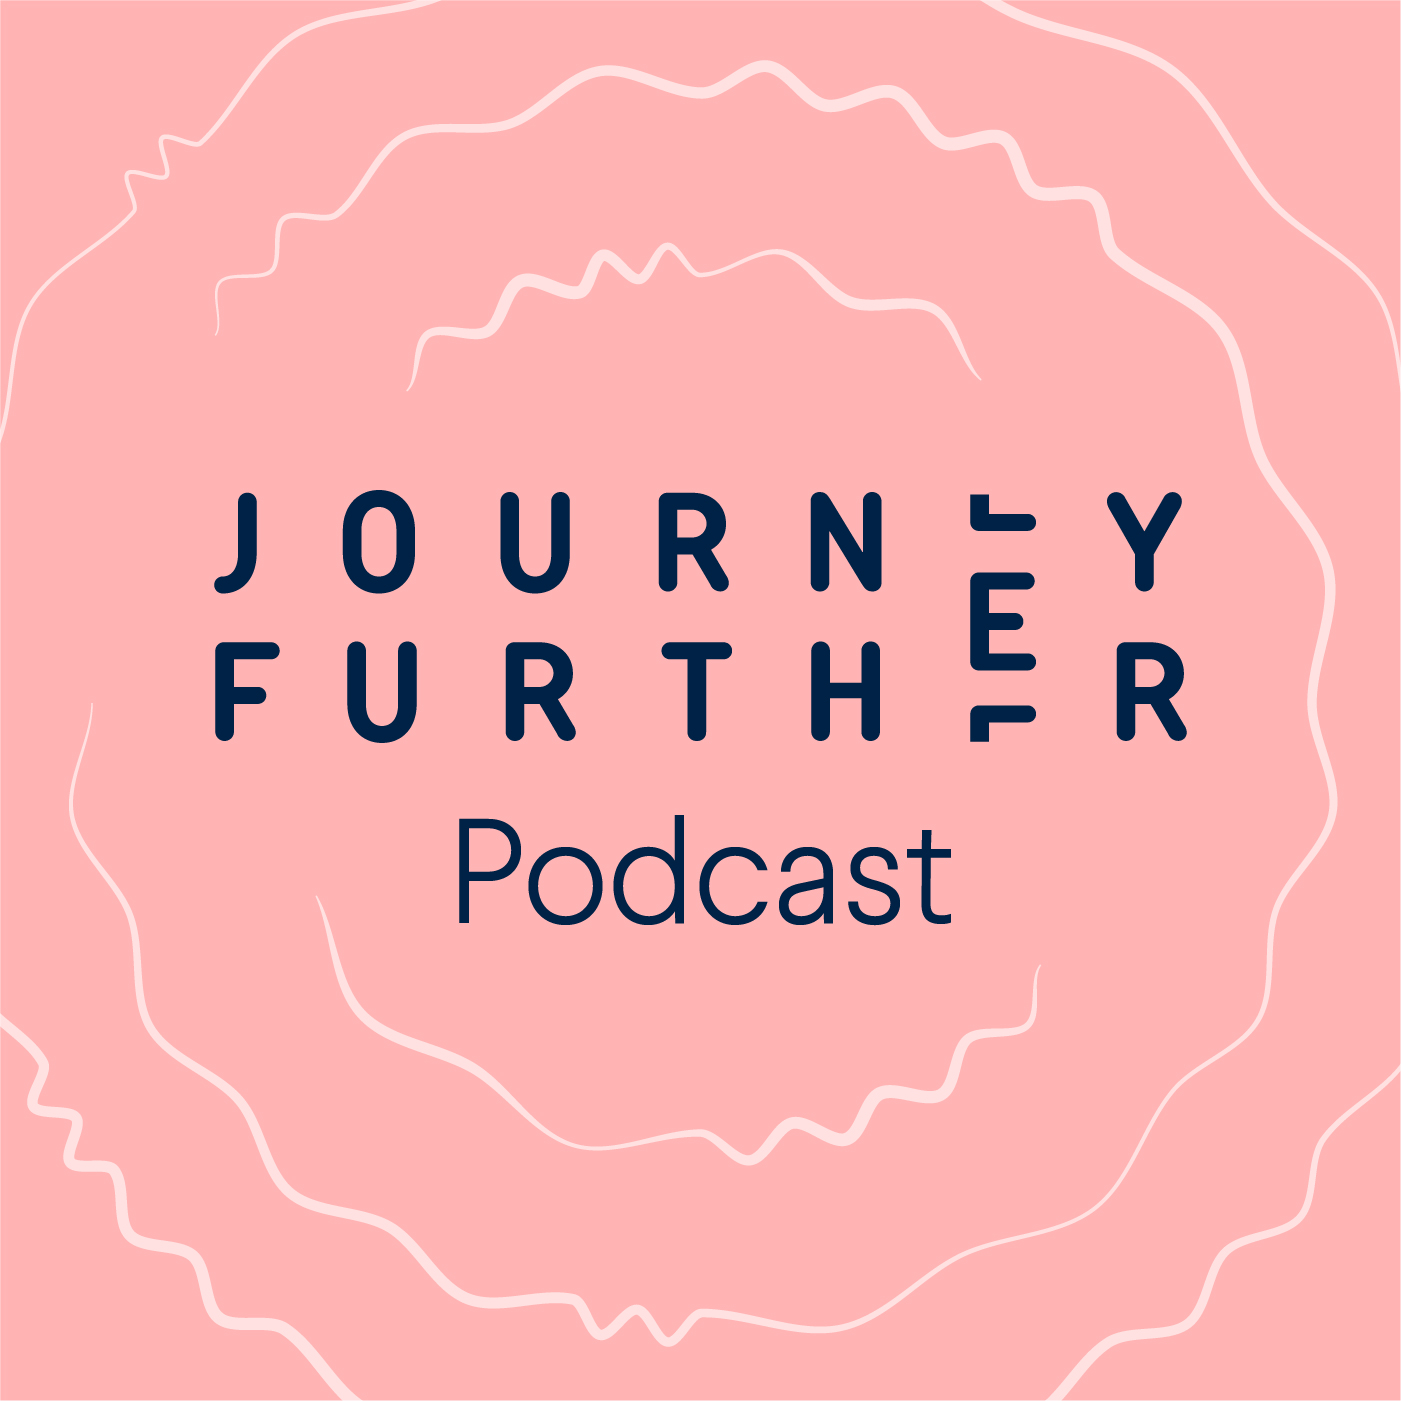 Welcome to the Journey Further Podcast